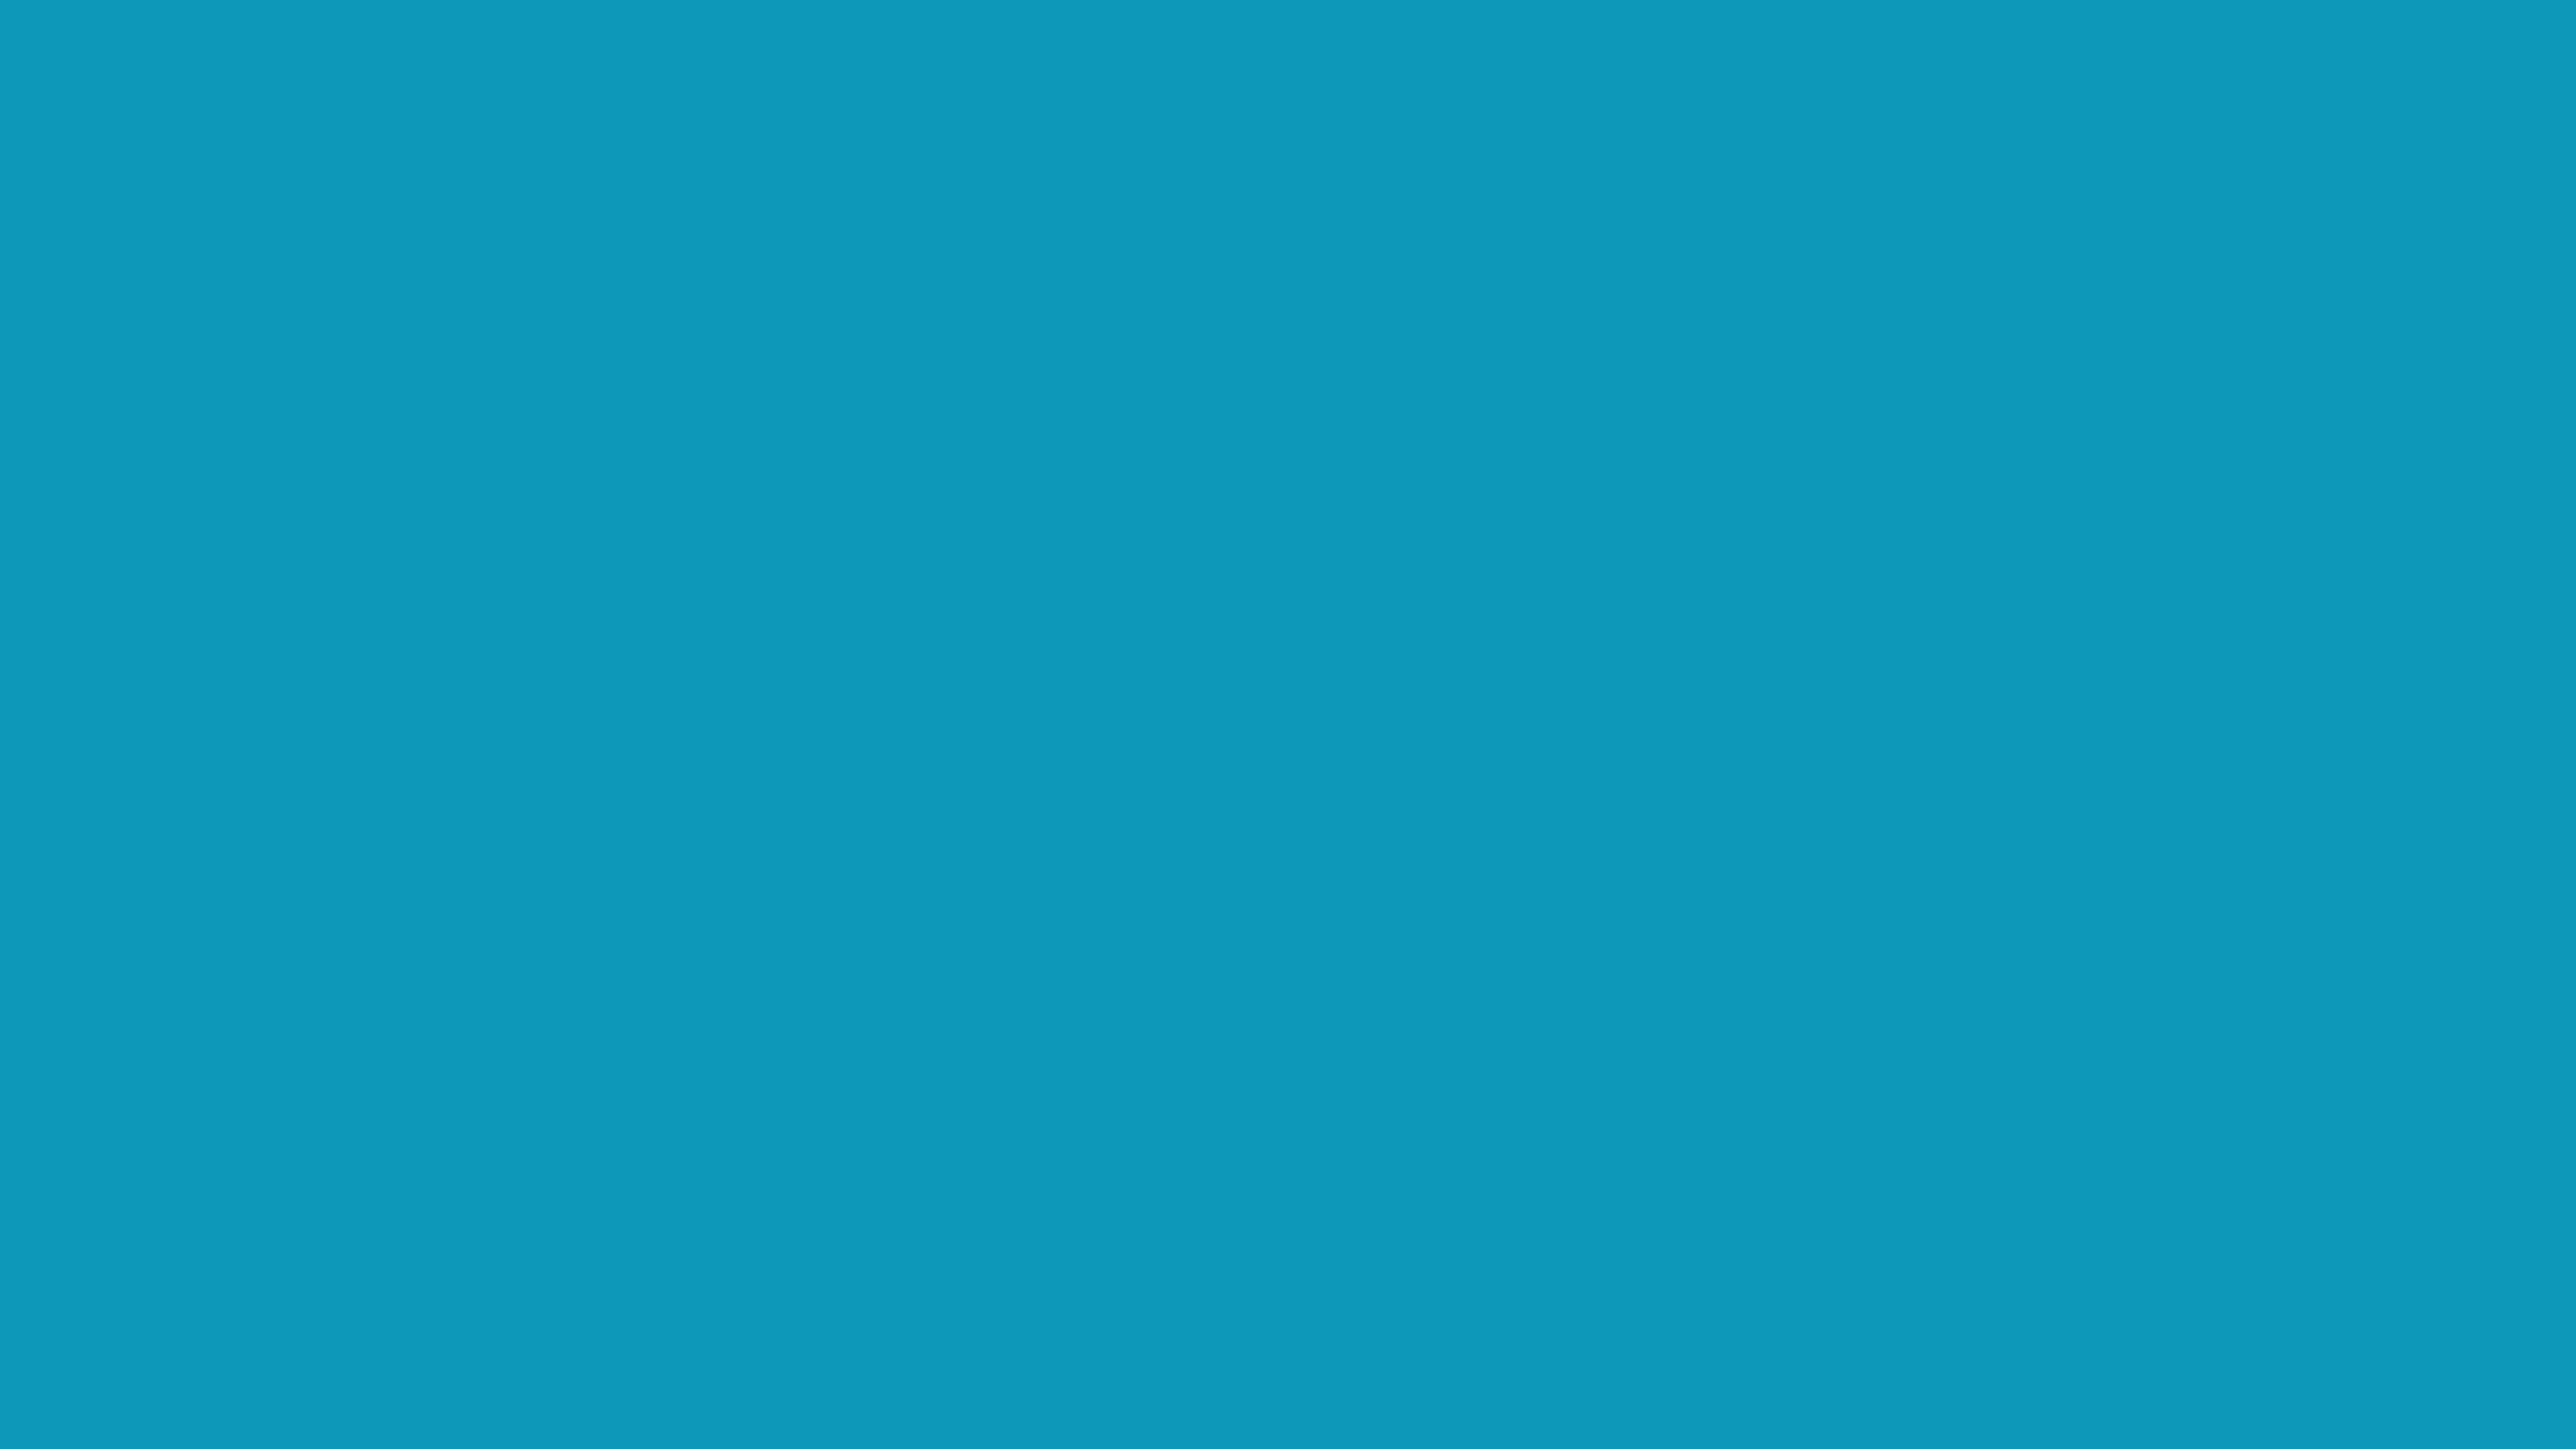 7680x4320 Blue-green Solid Color Background